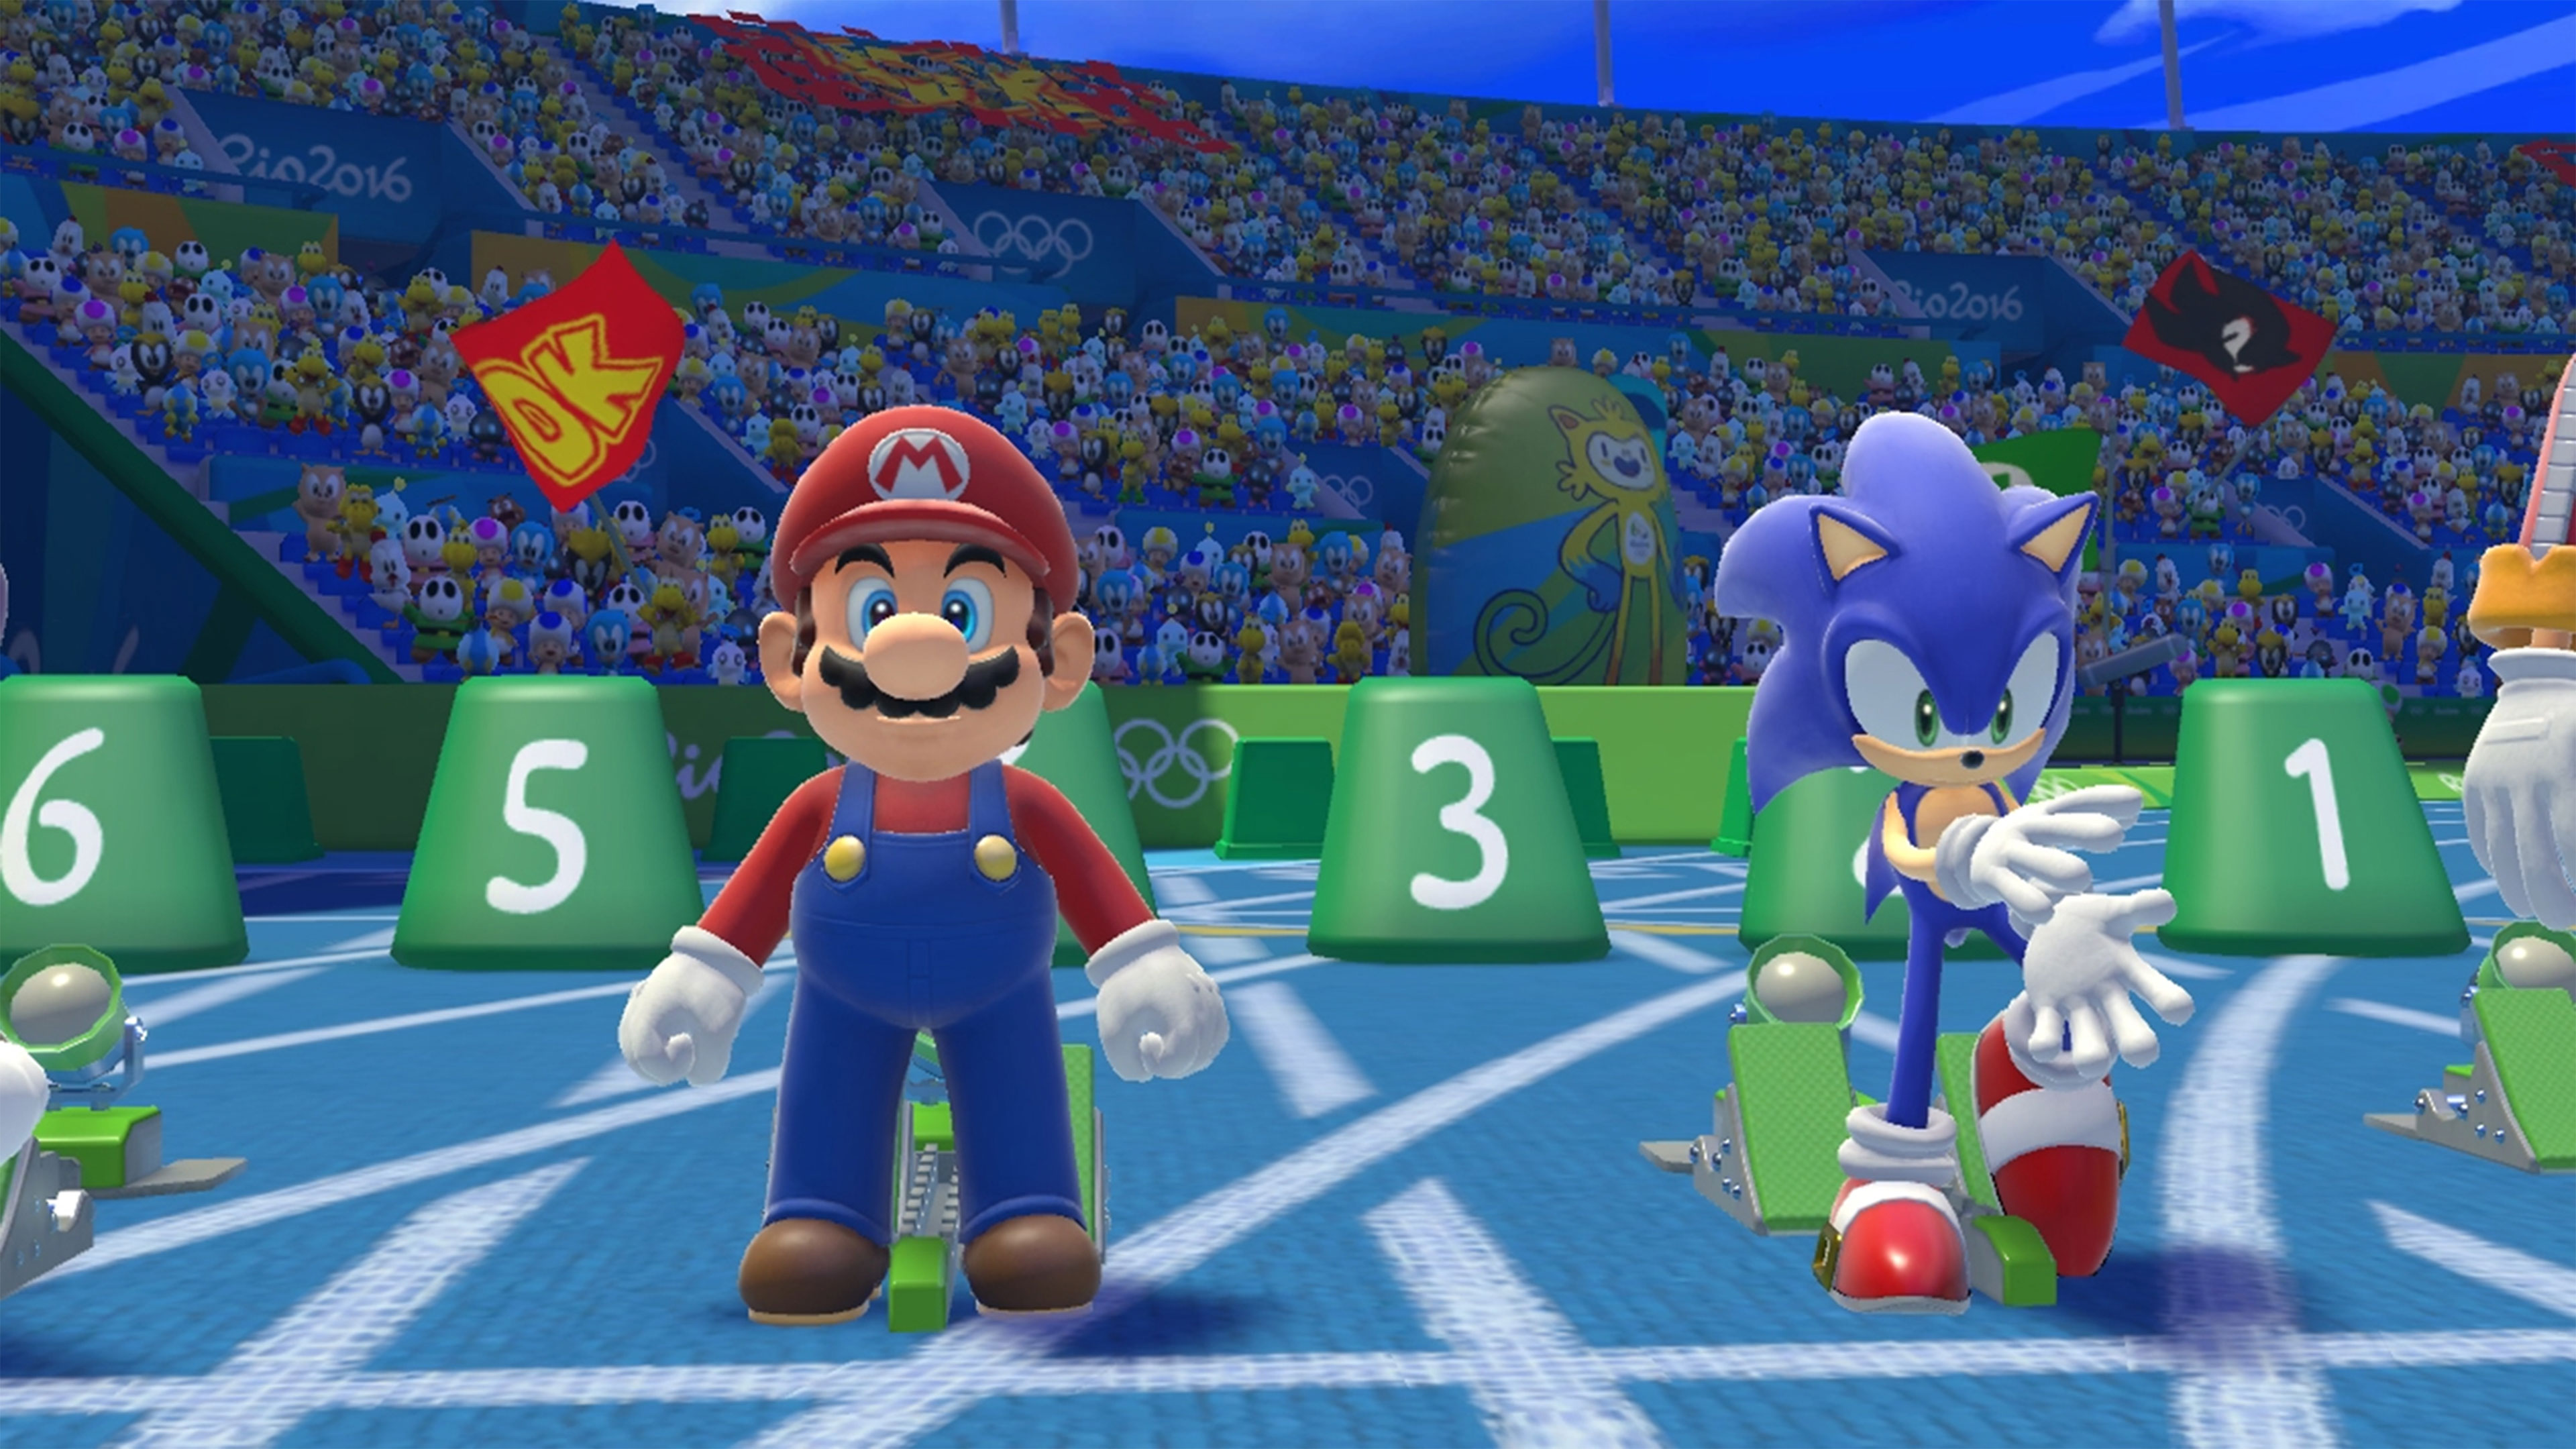 Mario And Sonic At The Rio 2016 Olympic Games Wallpapers In Ultra Hd